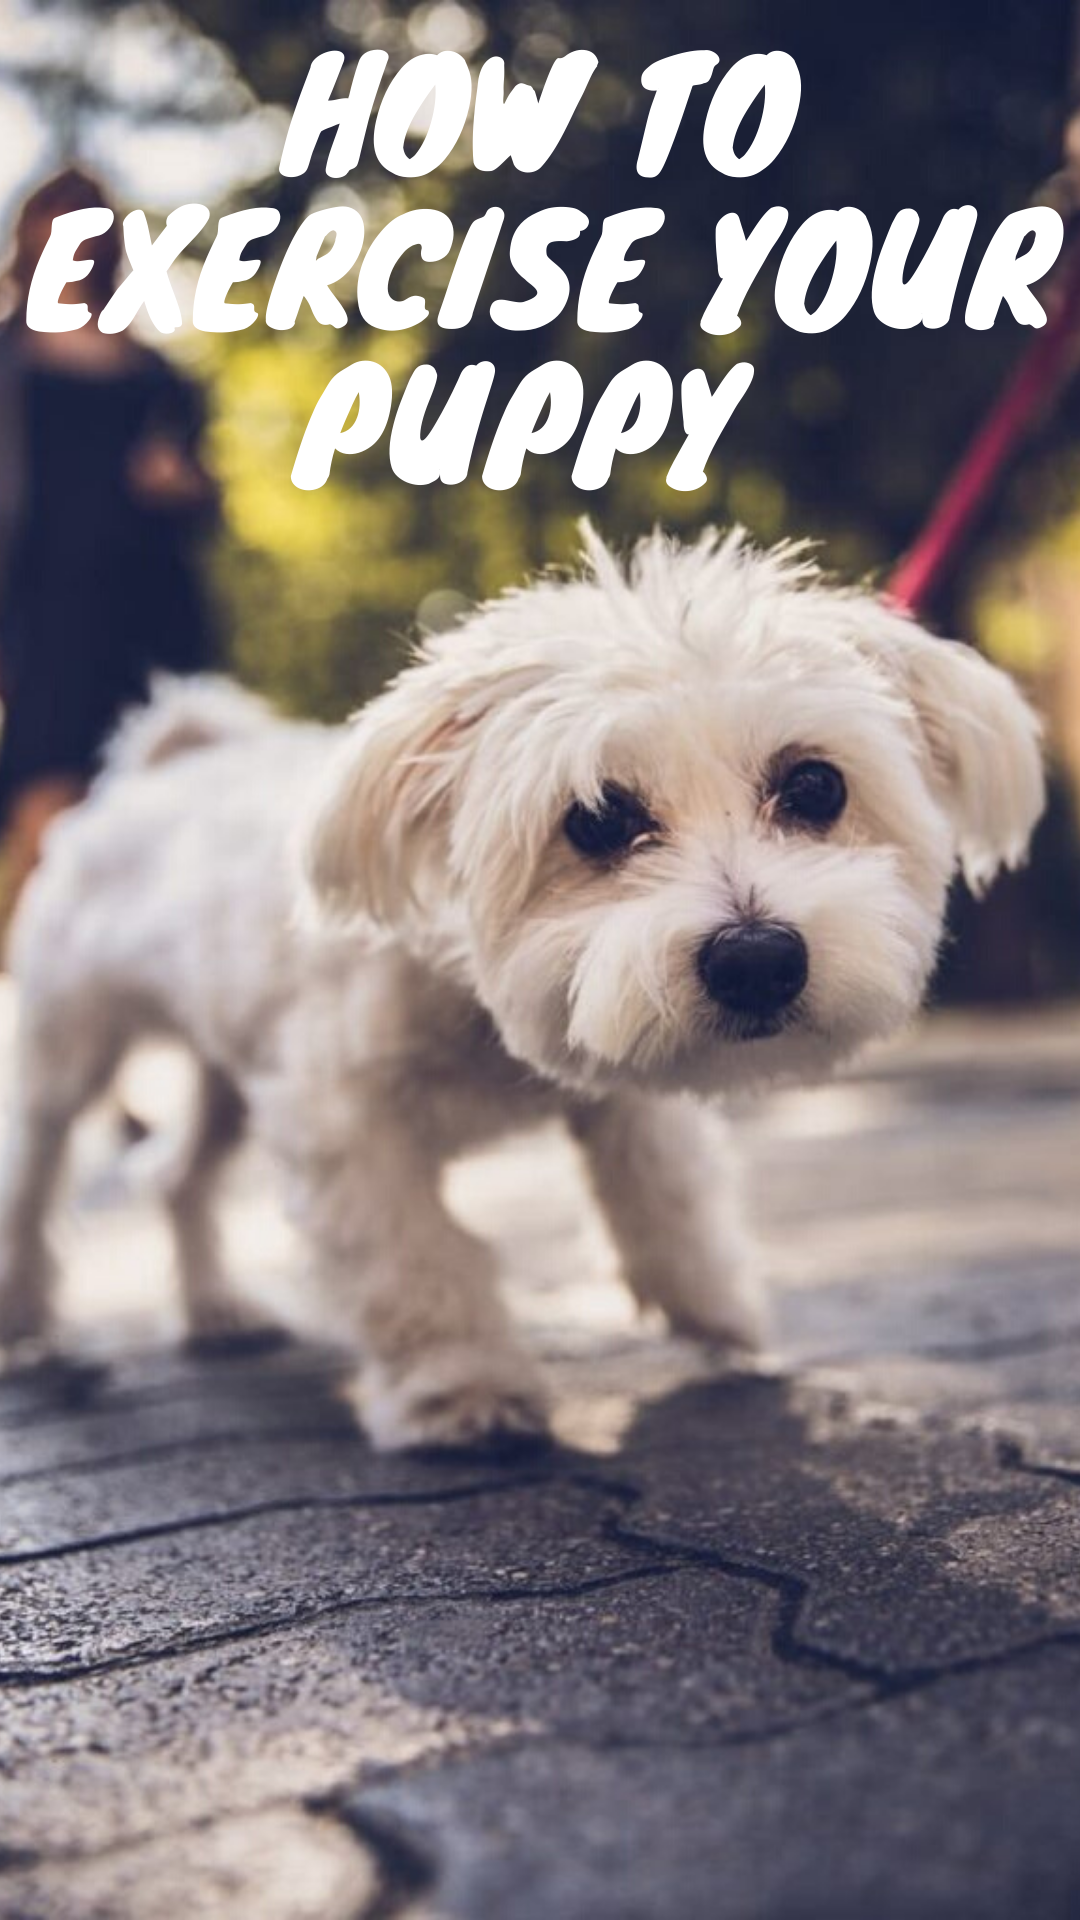 How To Exercise Your Puppy In